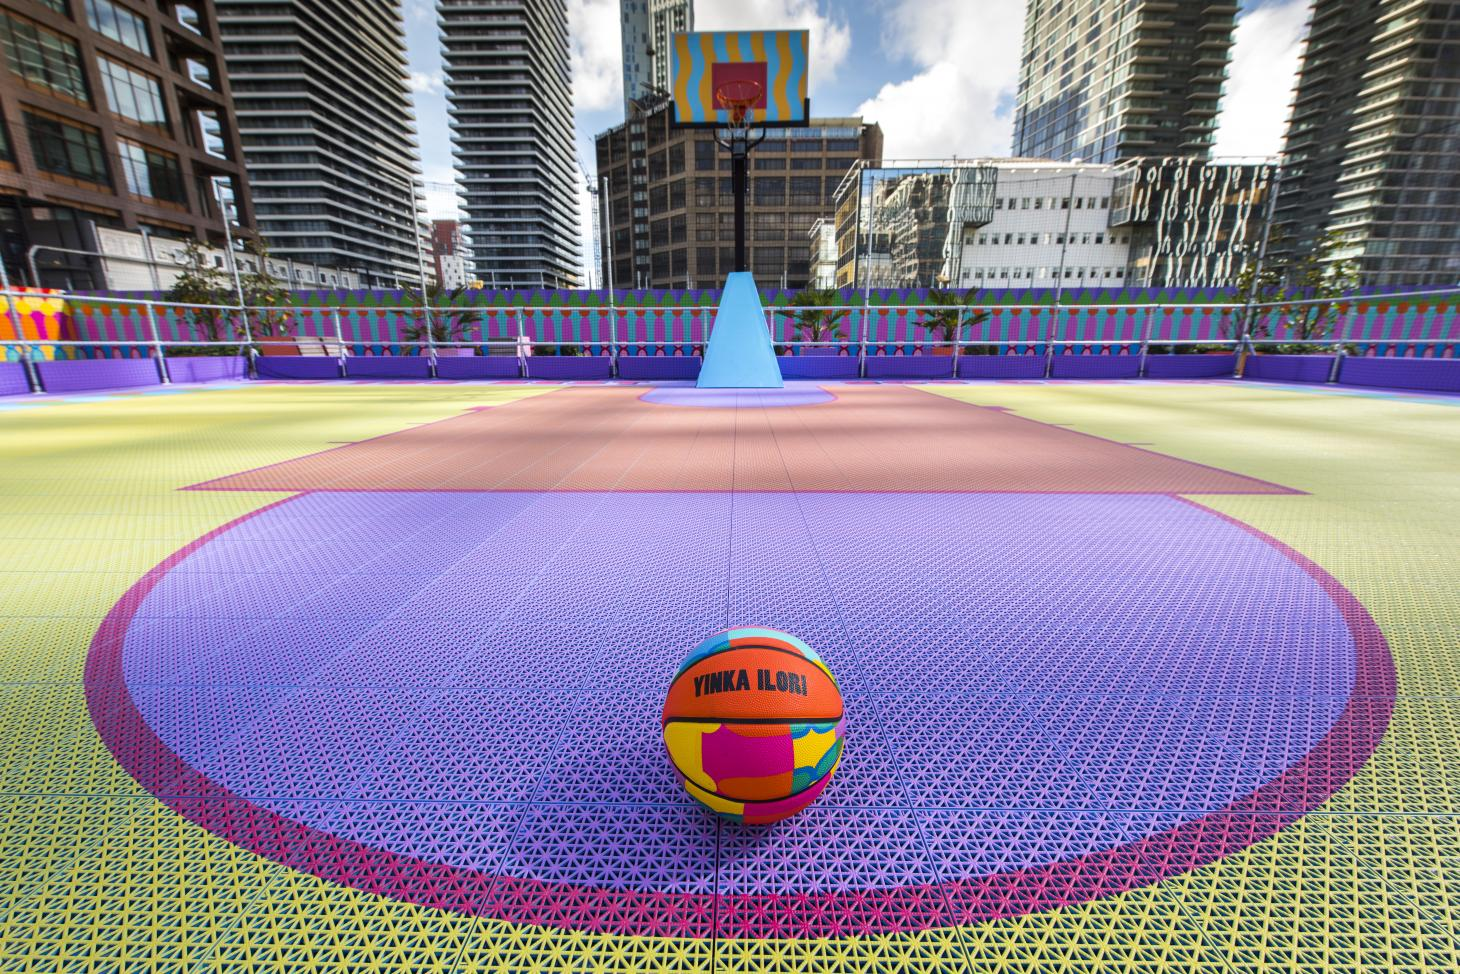 The basketball court designed by Yinka Ilori for the Canary Wharf Estate. For the project, Ilori also designed a limited-edition ball